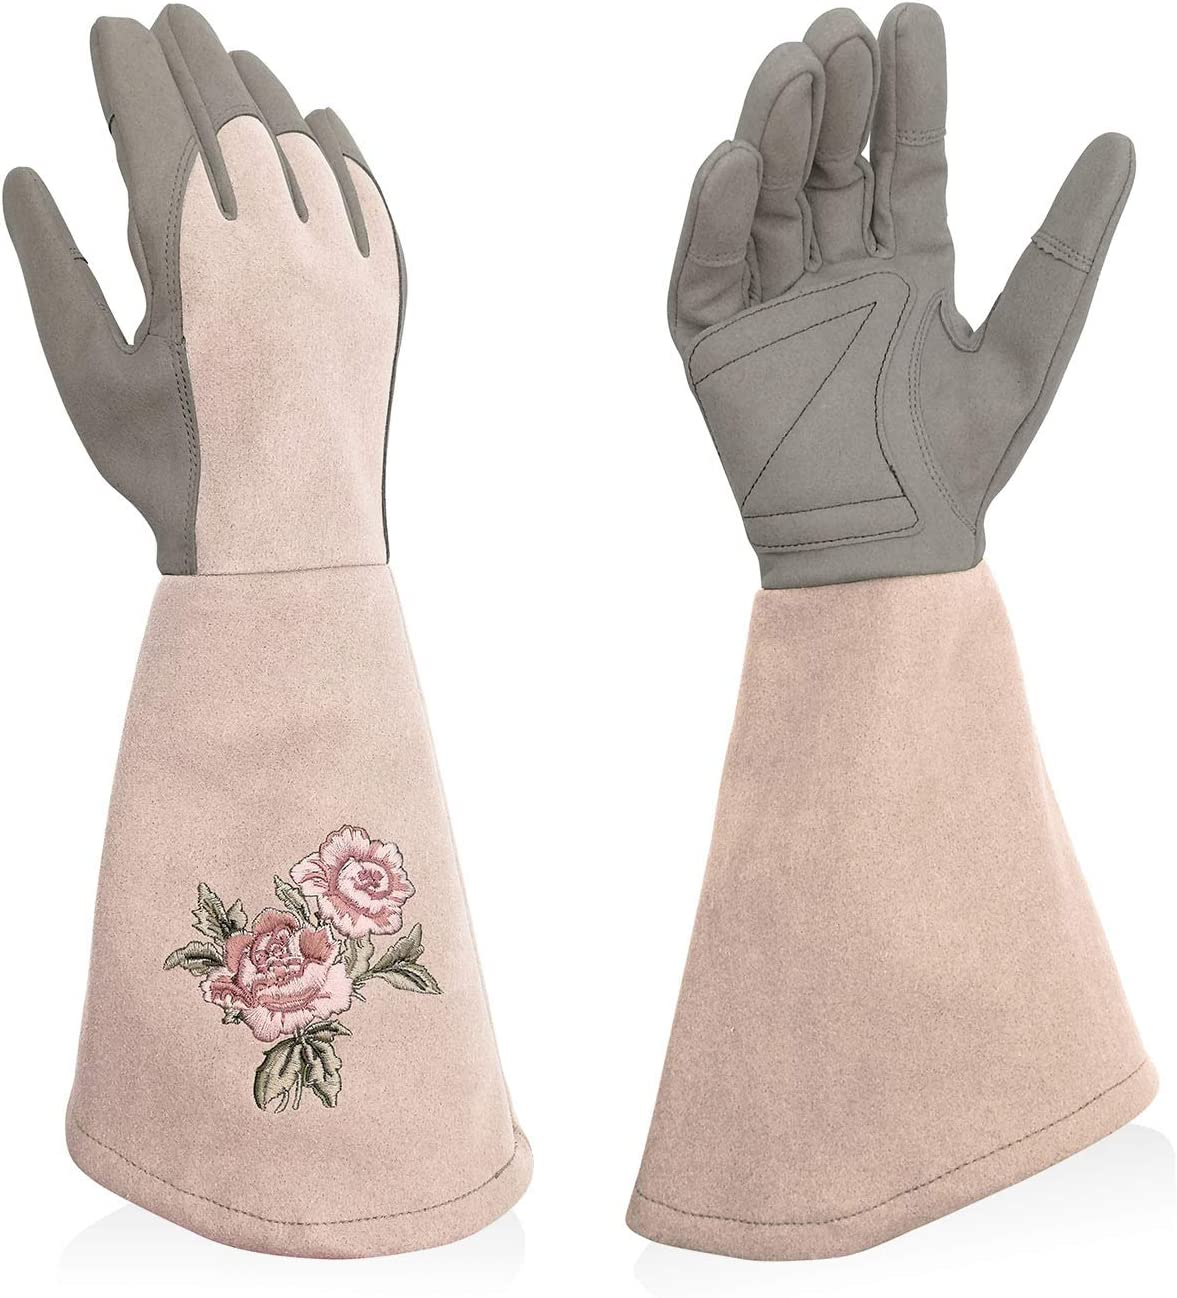 Intra-FIT Professional Rose Pruning Thornproof Gardening Gloves Puncture Resistant with Extra Long Forearm Protection for Women